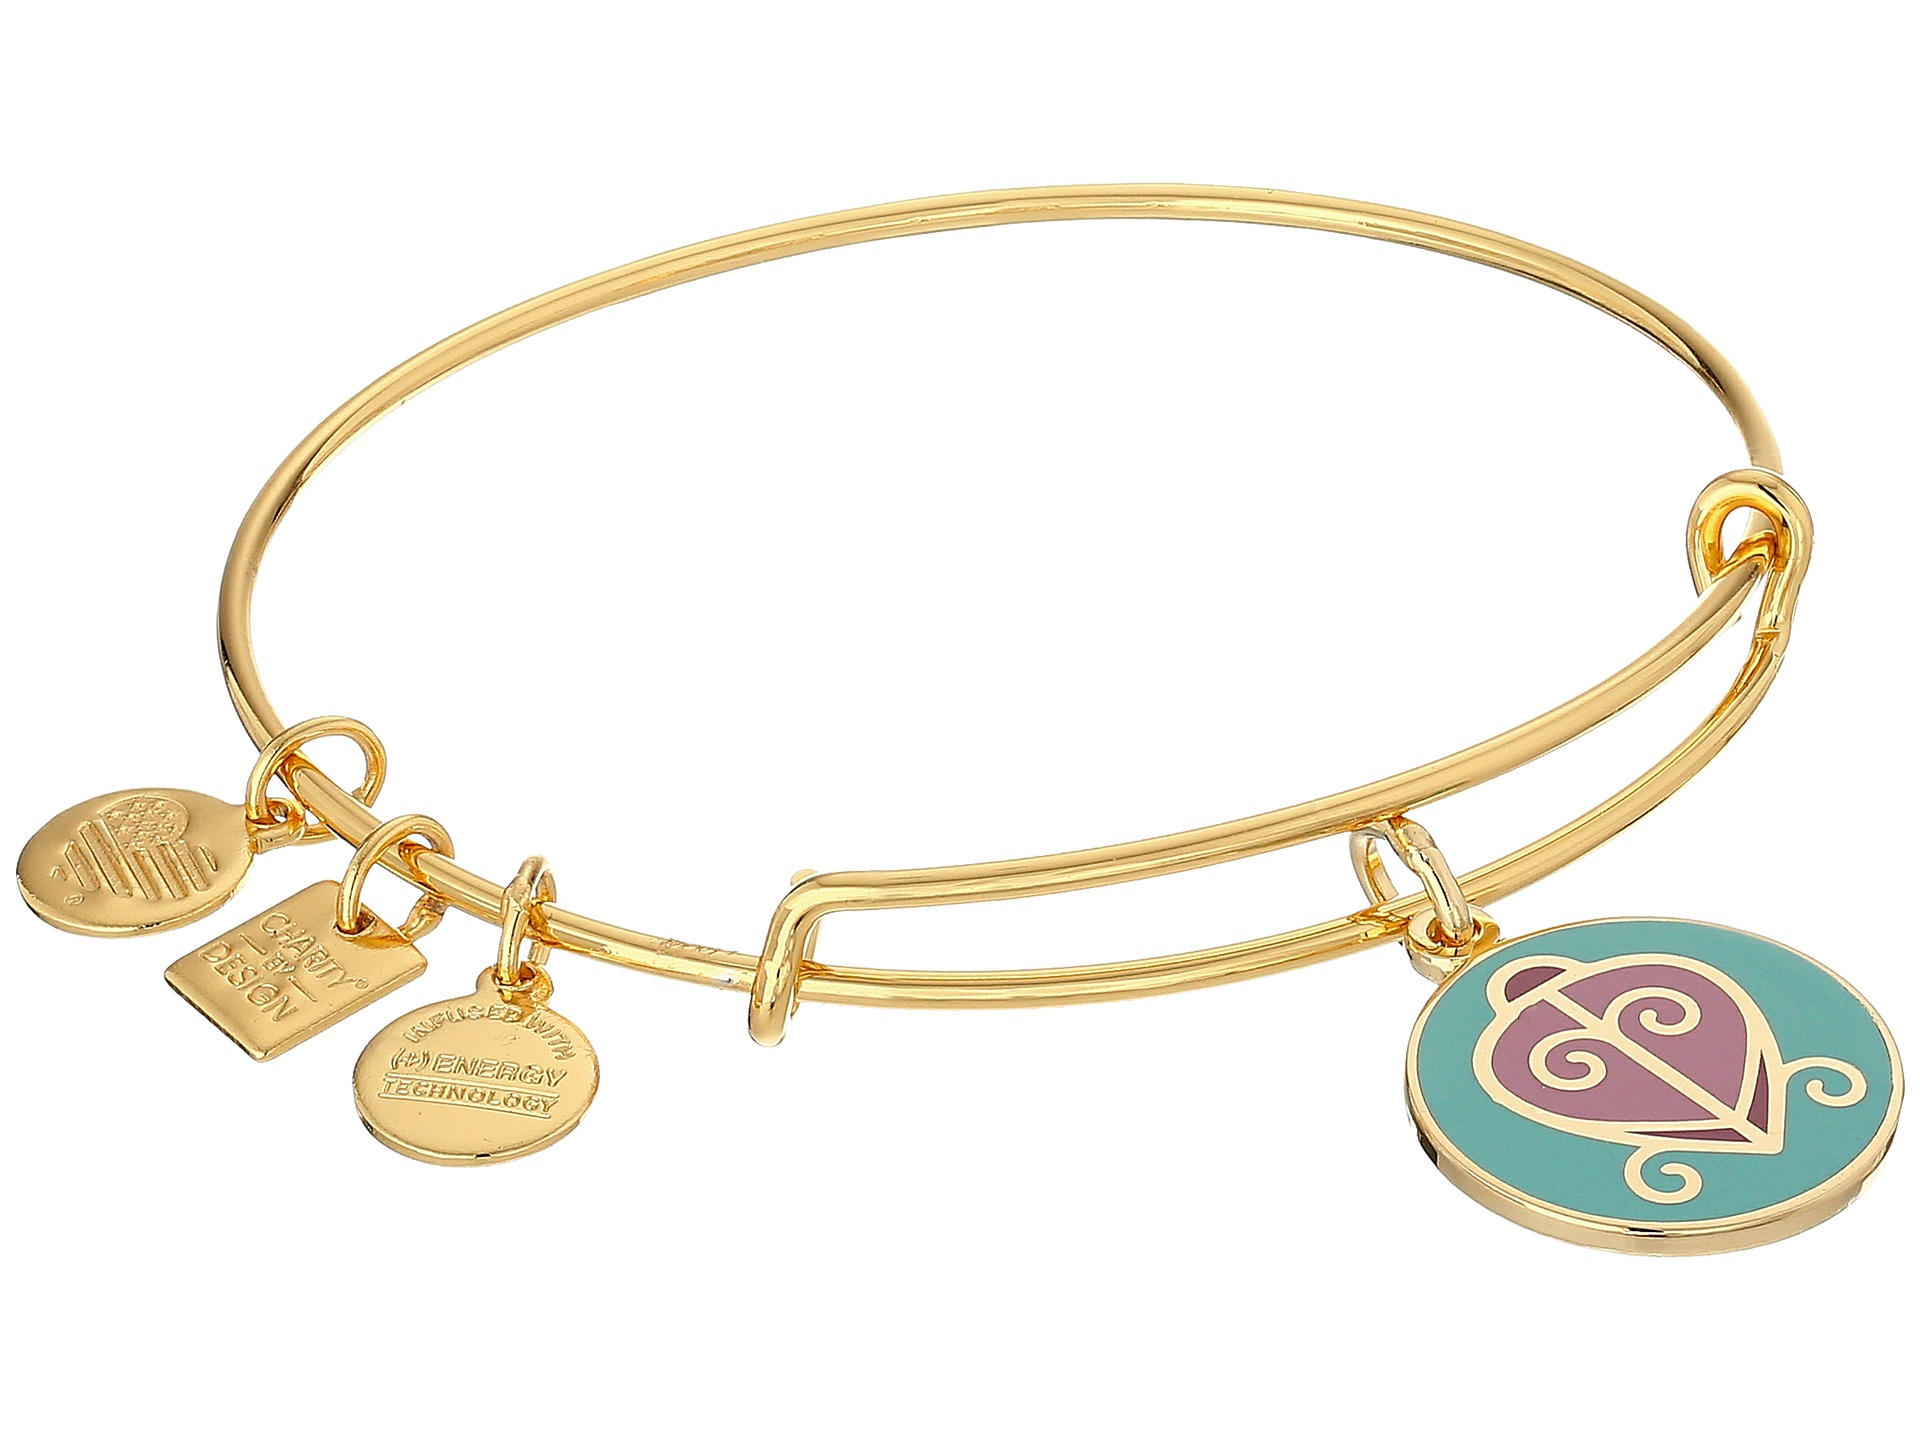 Alex And Ani Charity By Design  The Way Home Expandable Charm Bangle  Bracelet At Zappos